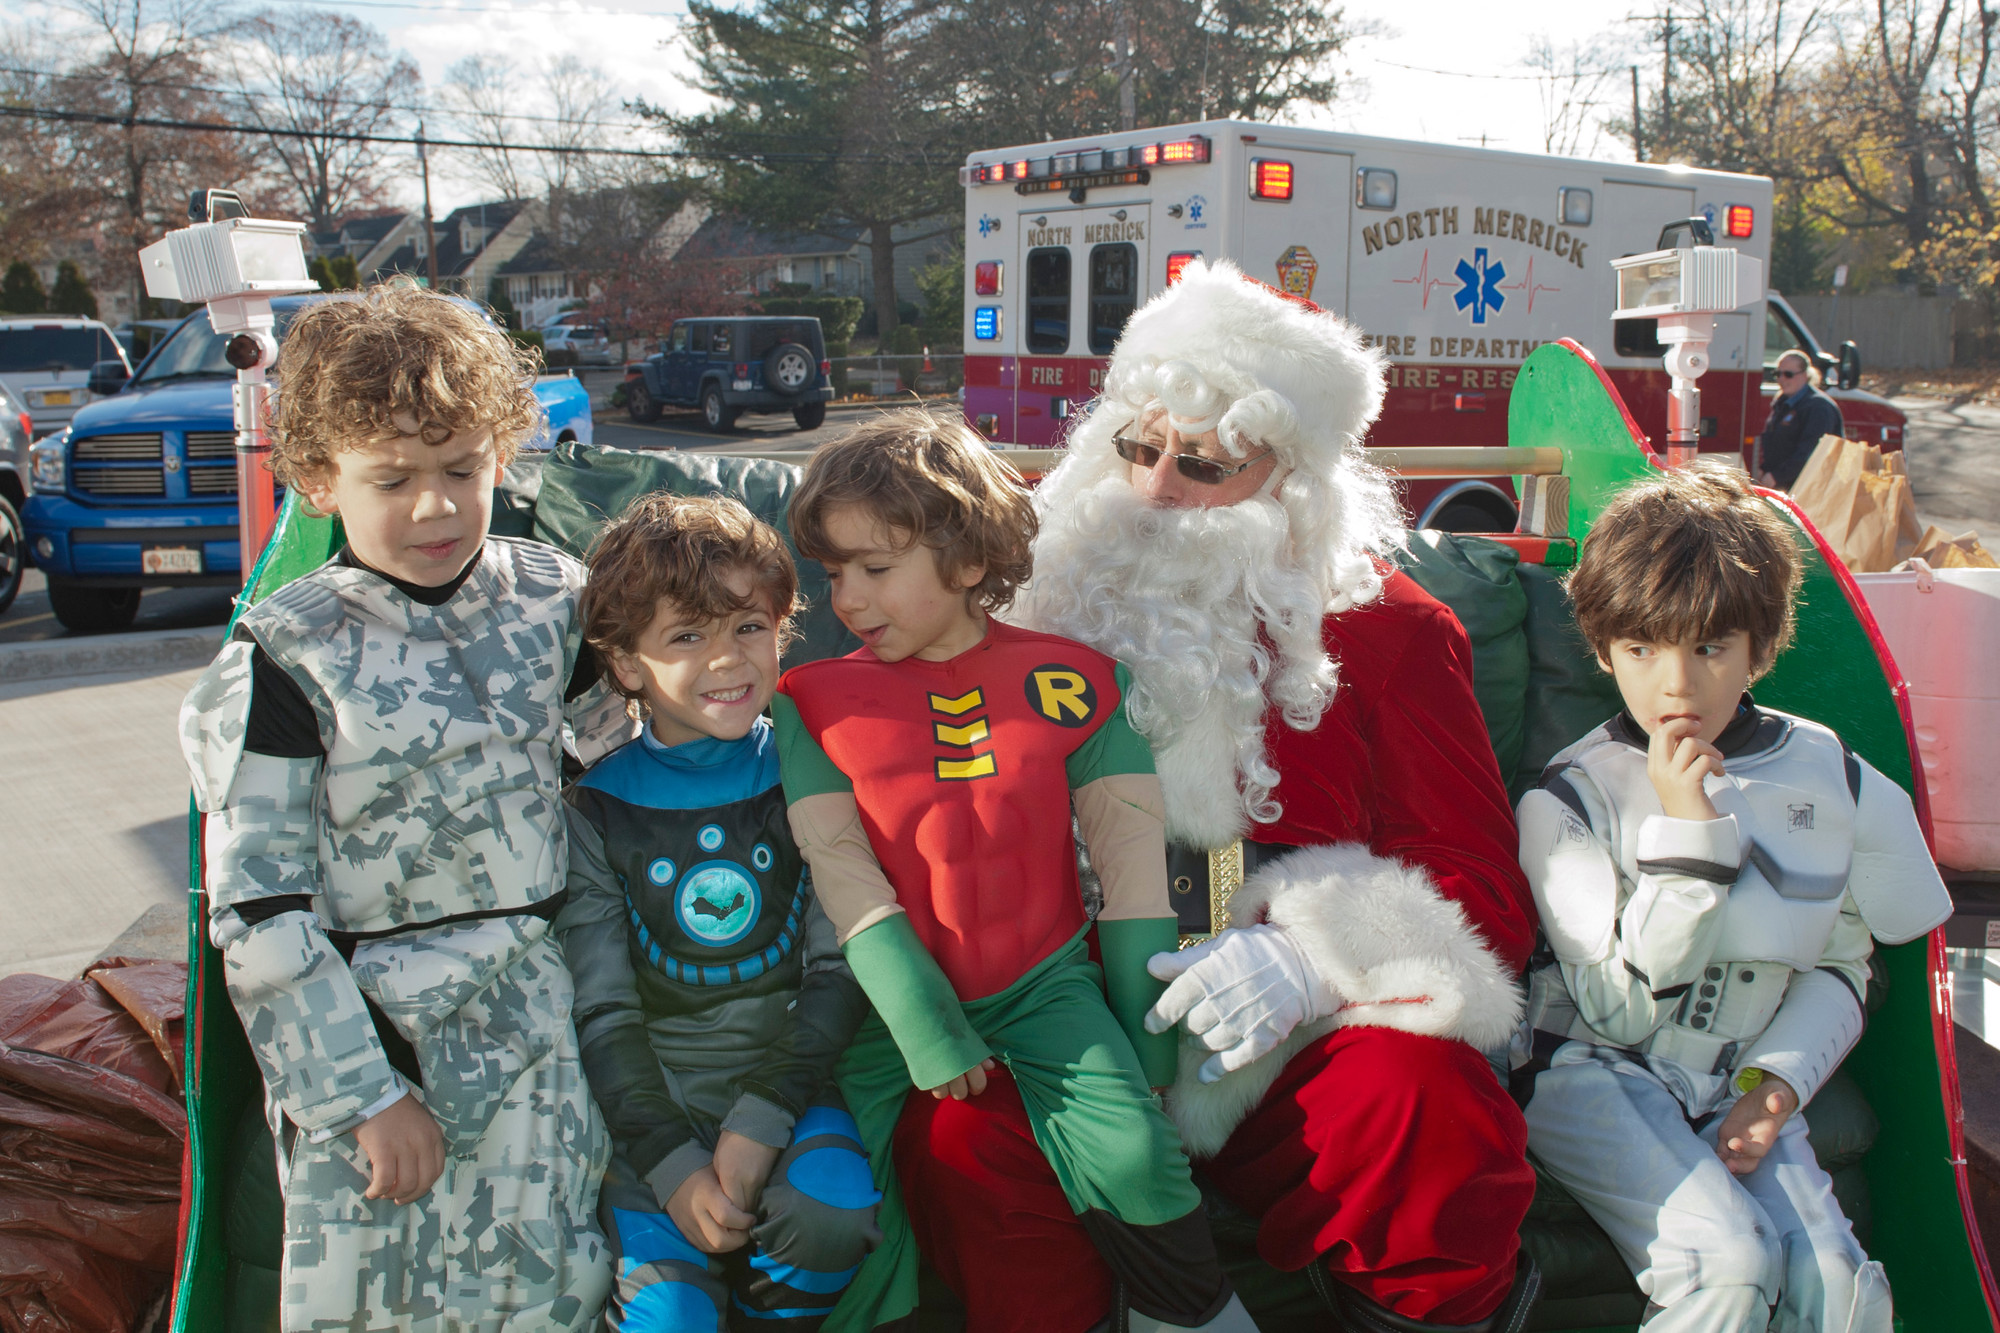 North Merrick F.D. Rag-A-Muffin Parade with Santa